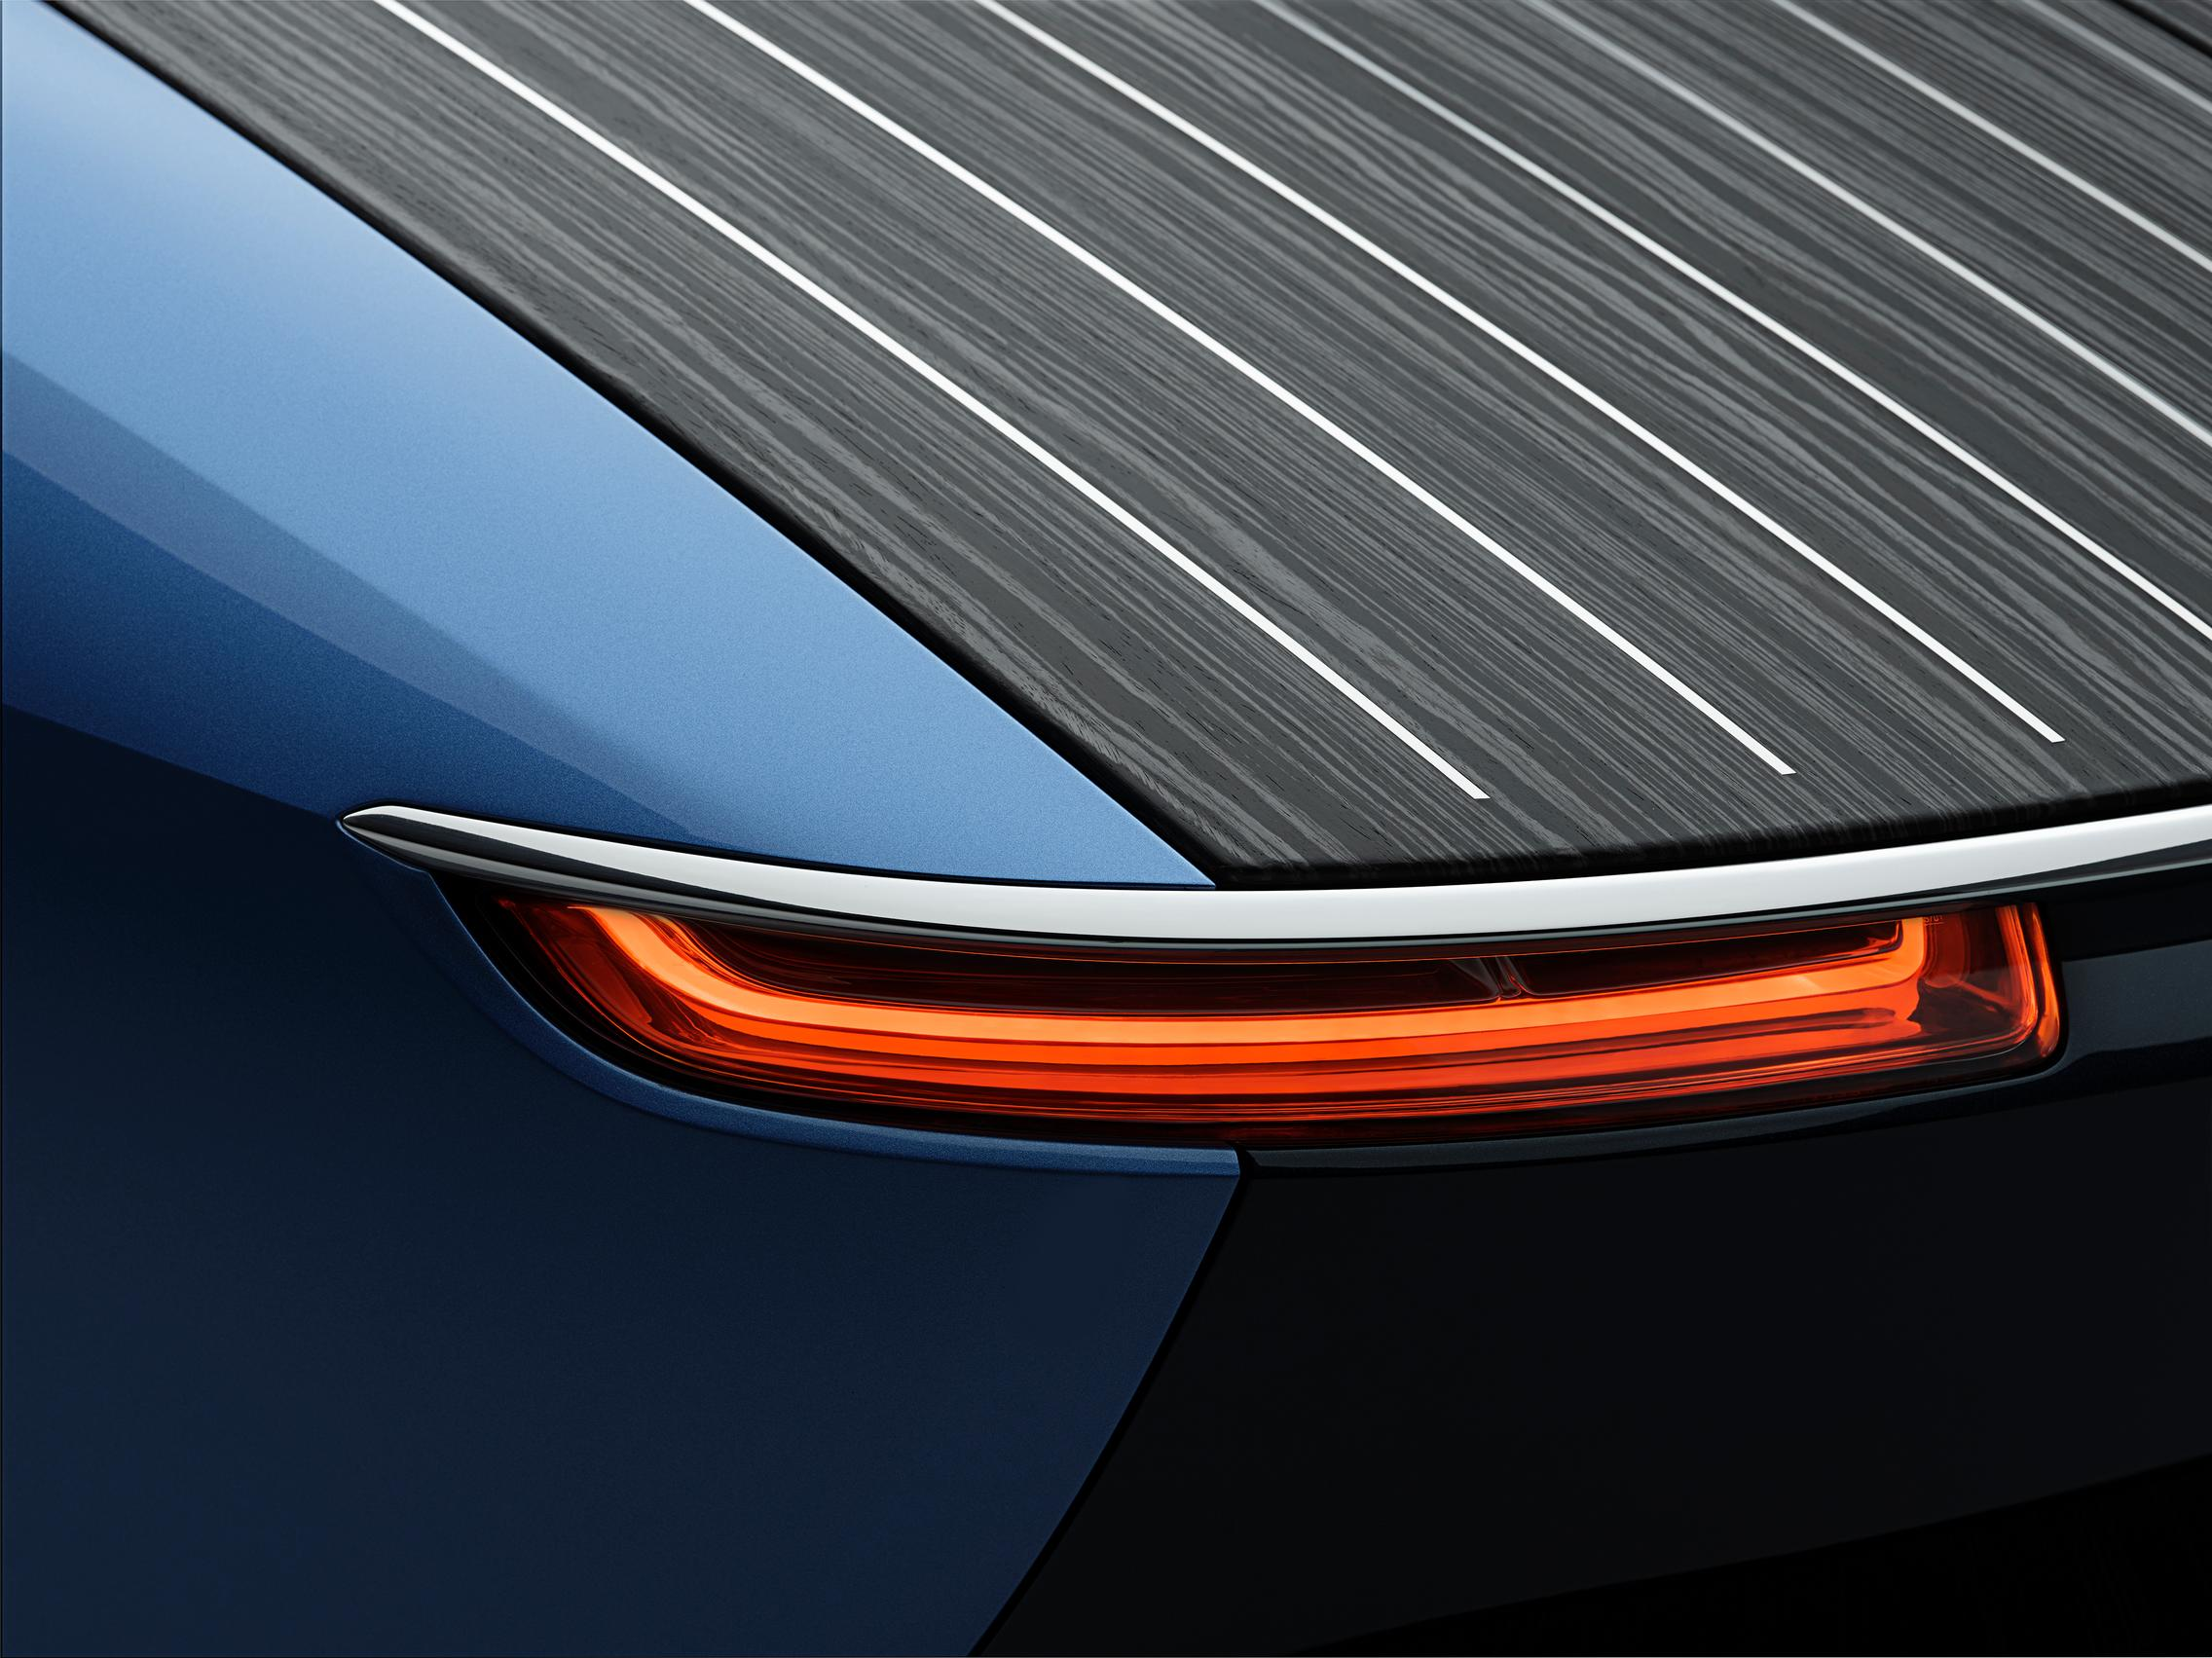 Rolls-Royce Boat Tail taillight